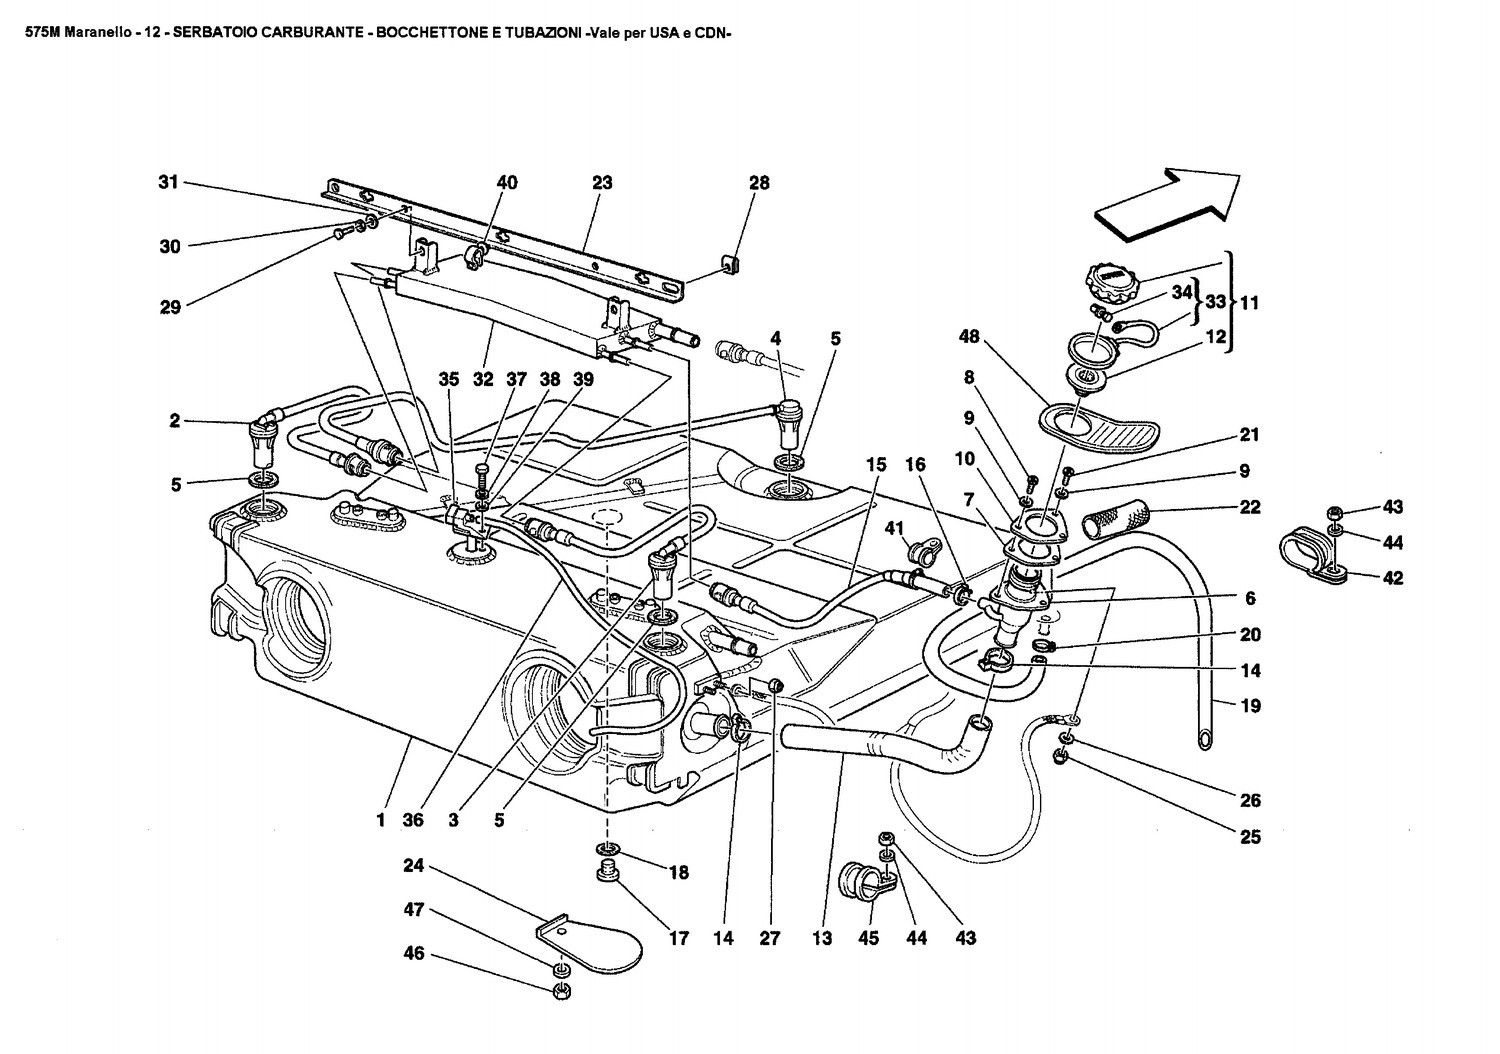 FUEL TANK - UNION AND PIPING -Valid for USA and CDN-